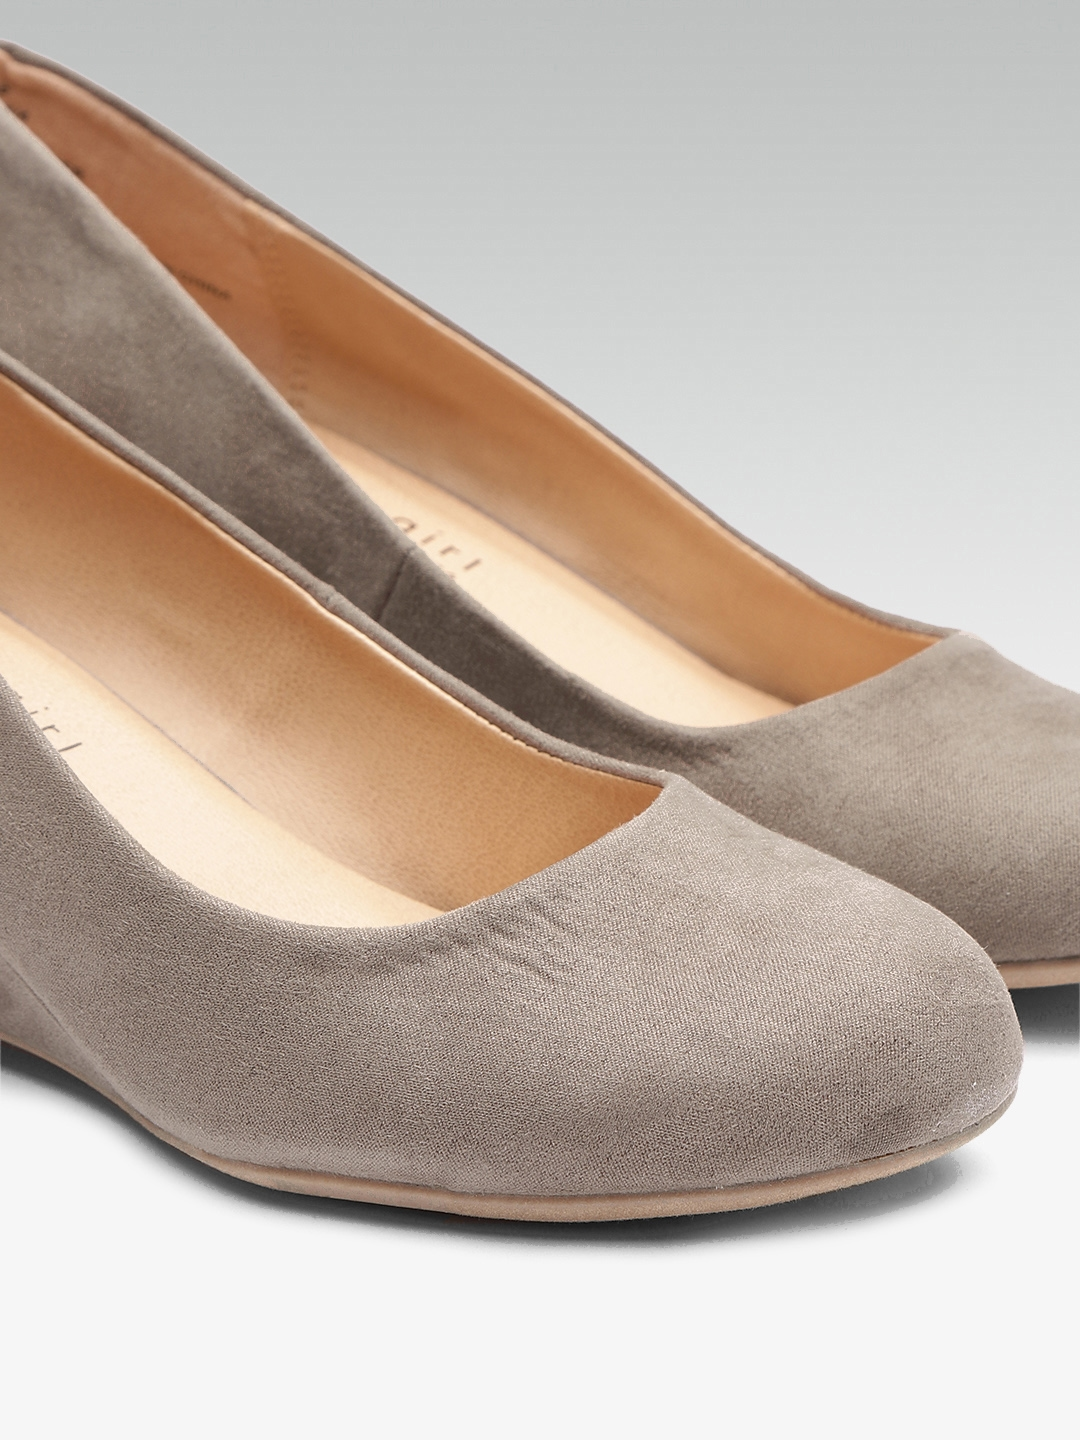 7f4fc01d4b6 Buy Steve Madden Women Taupe Solid Pumps - Heels for Women 8713983 ...